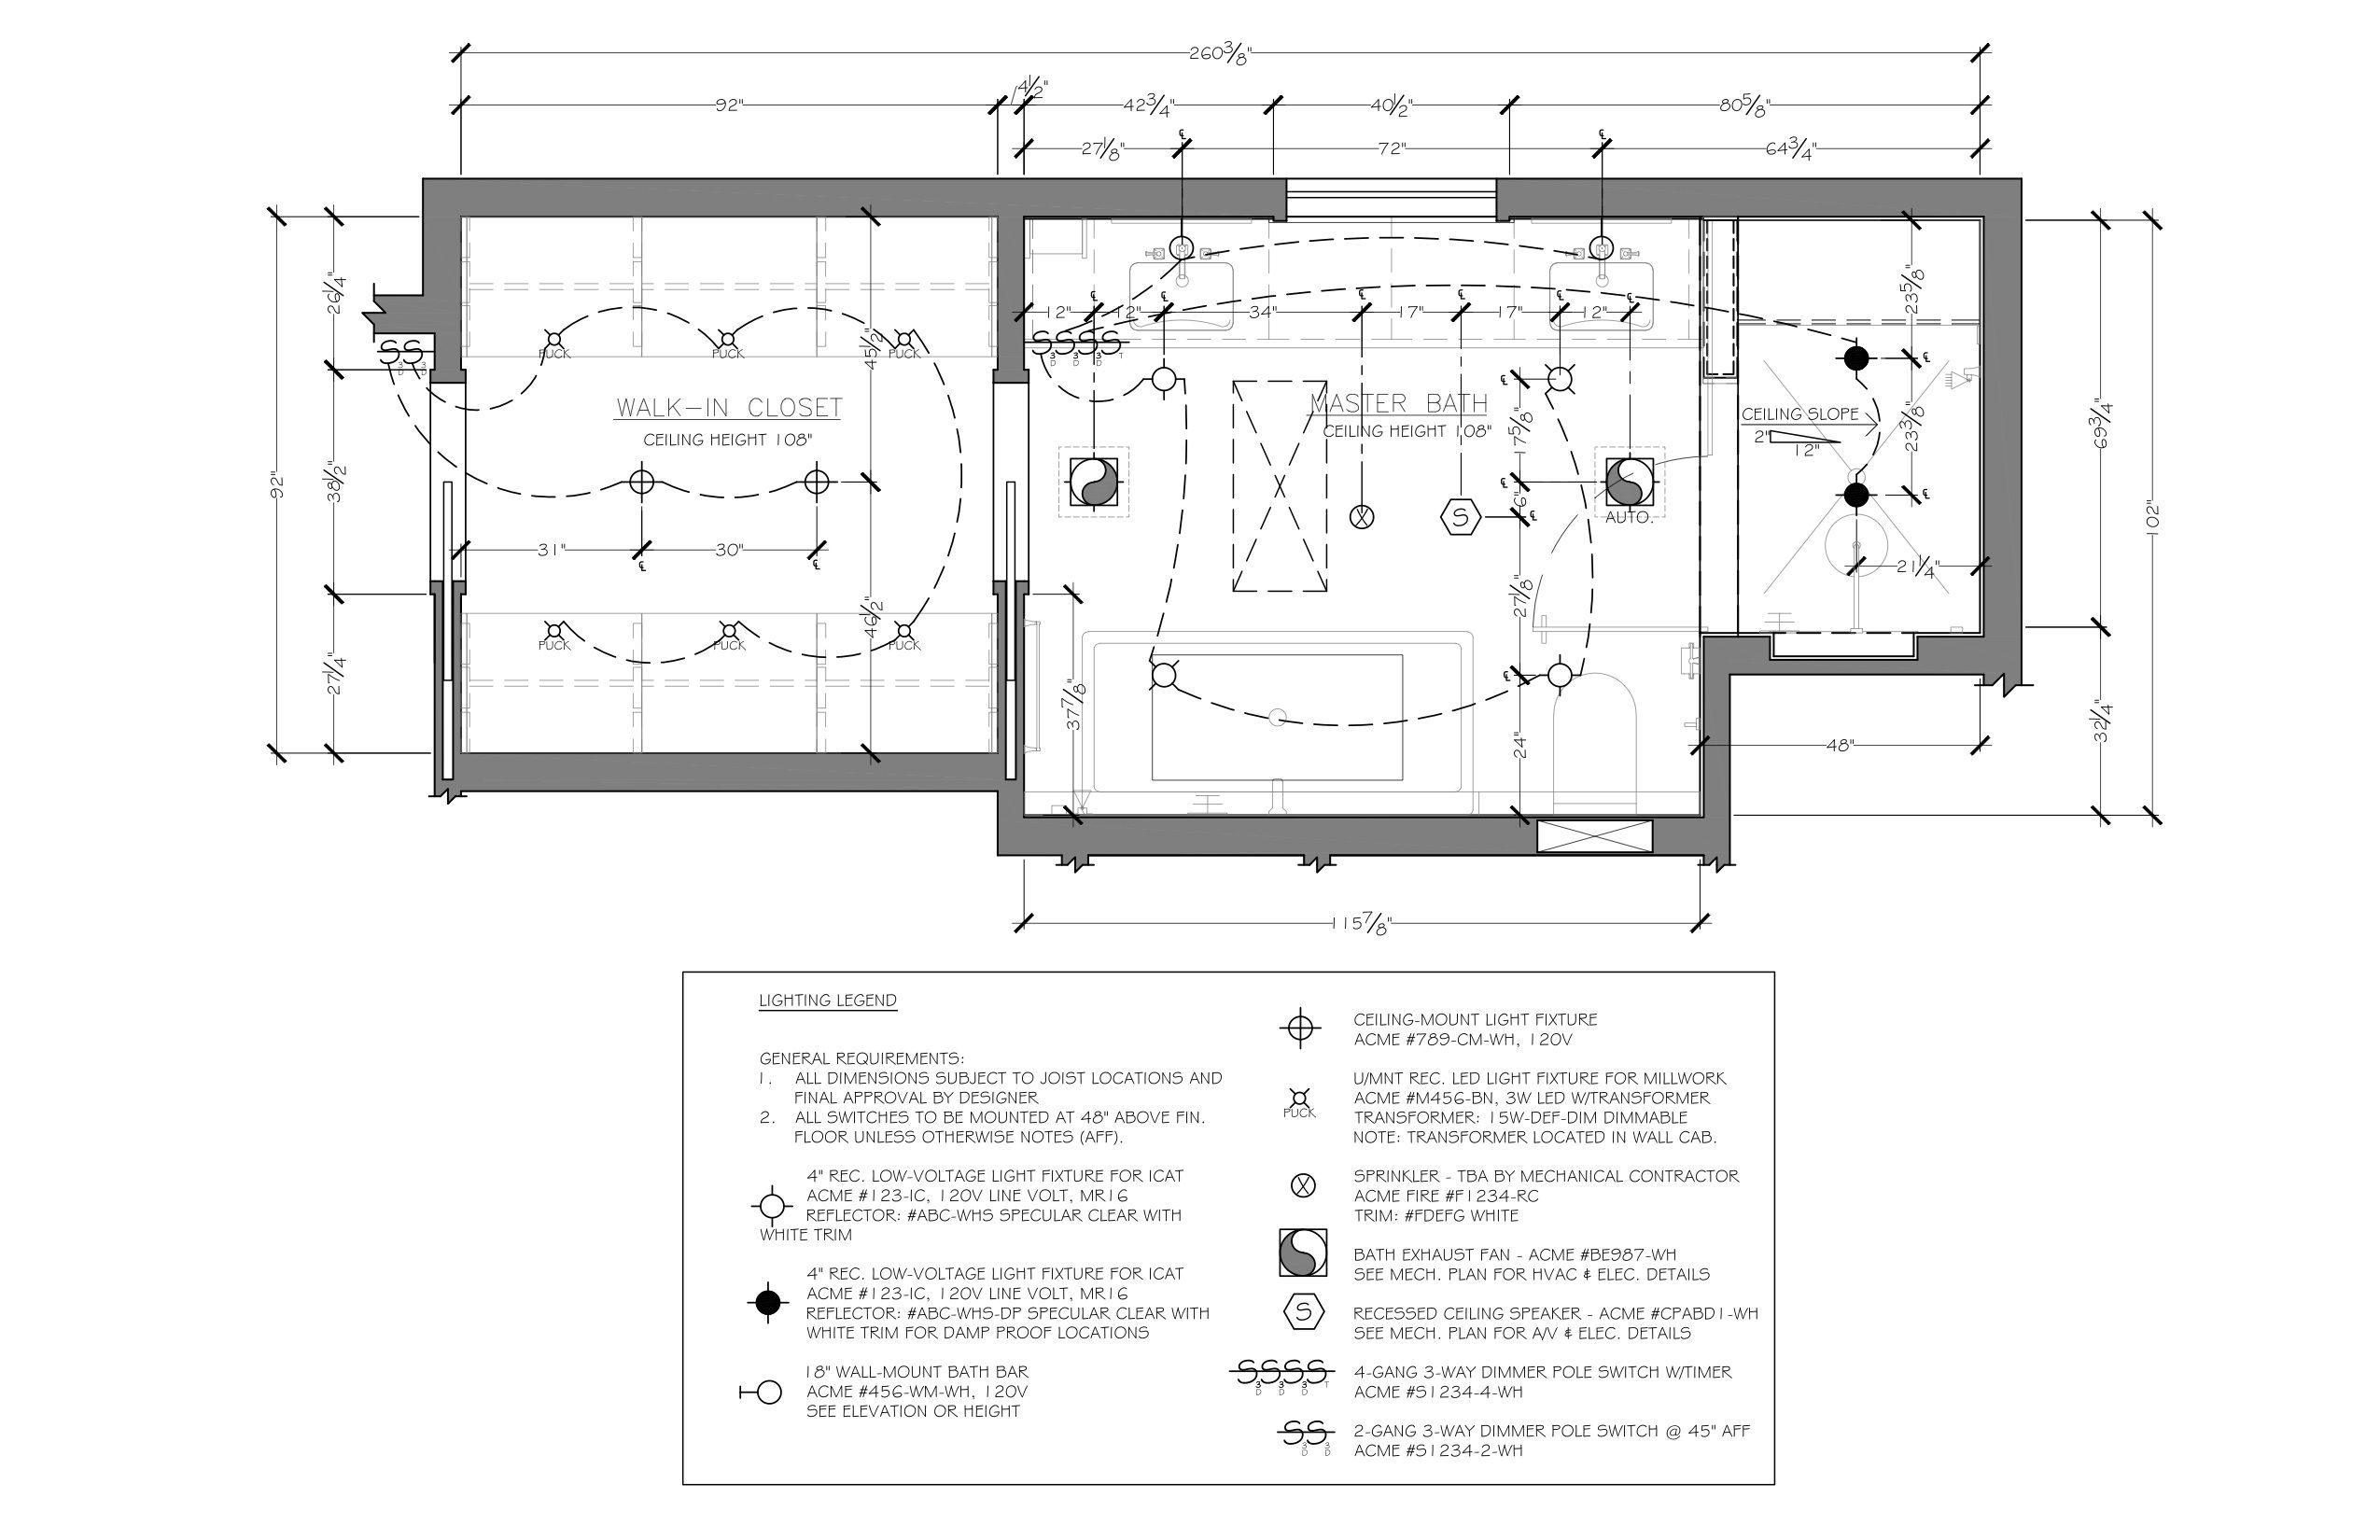 Bathroom Reflected Ceiling Plan Example C 2013 Corey Klassen Ckd Used Under Permission From The National Kitchen B Ceiling Plan Study Design Floor Plans